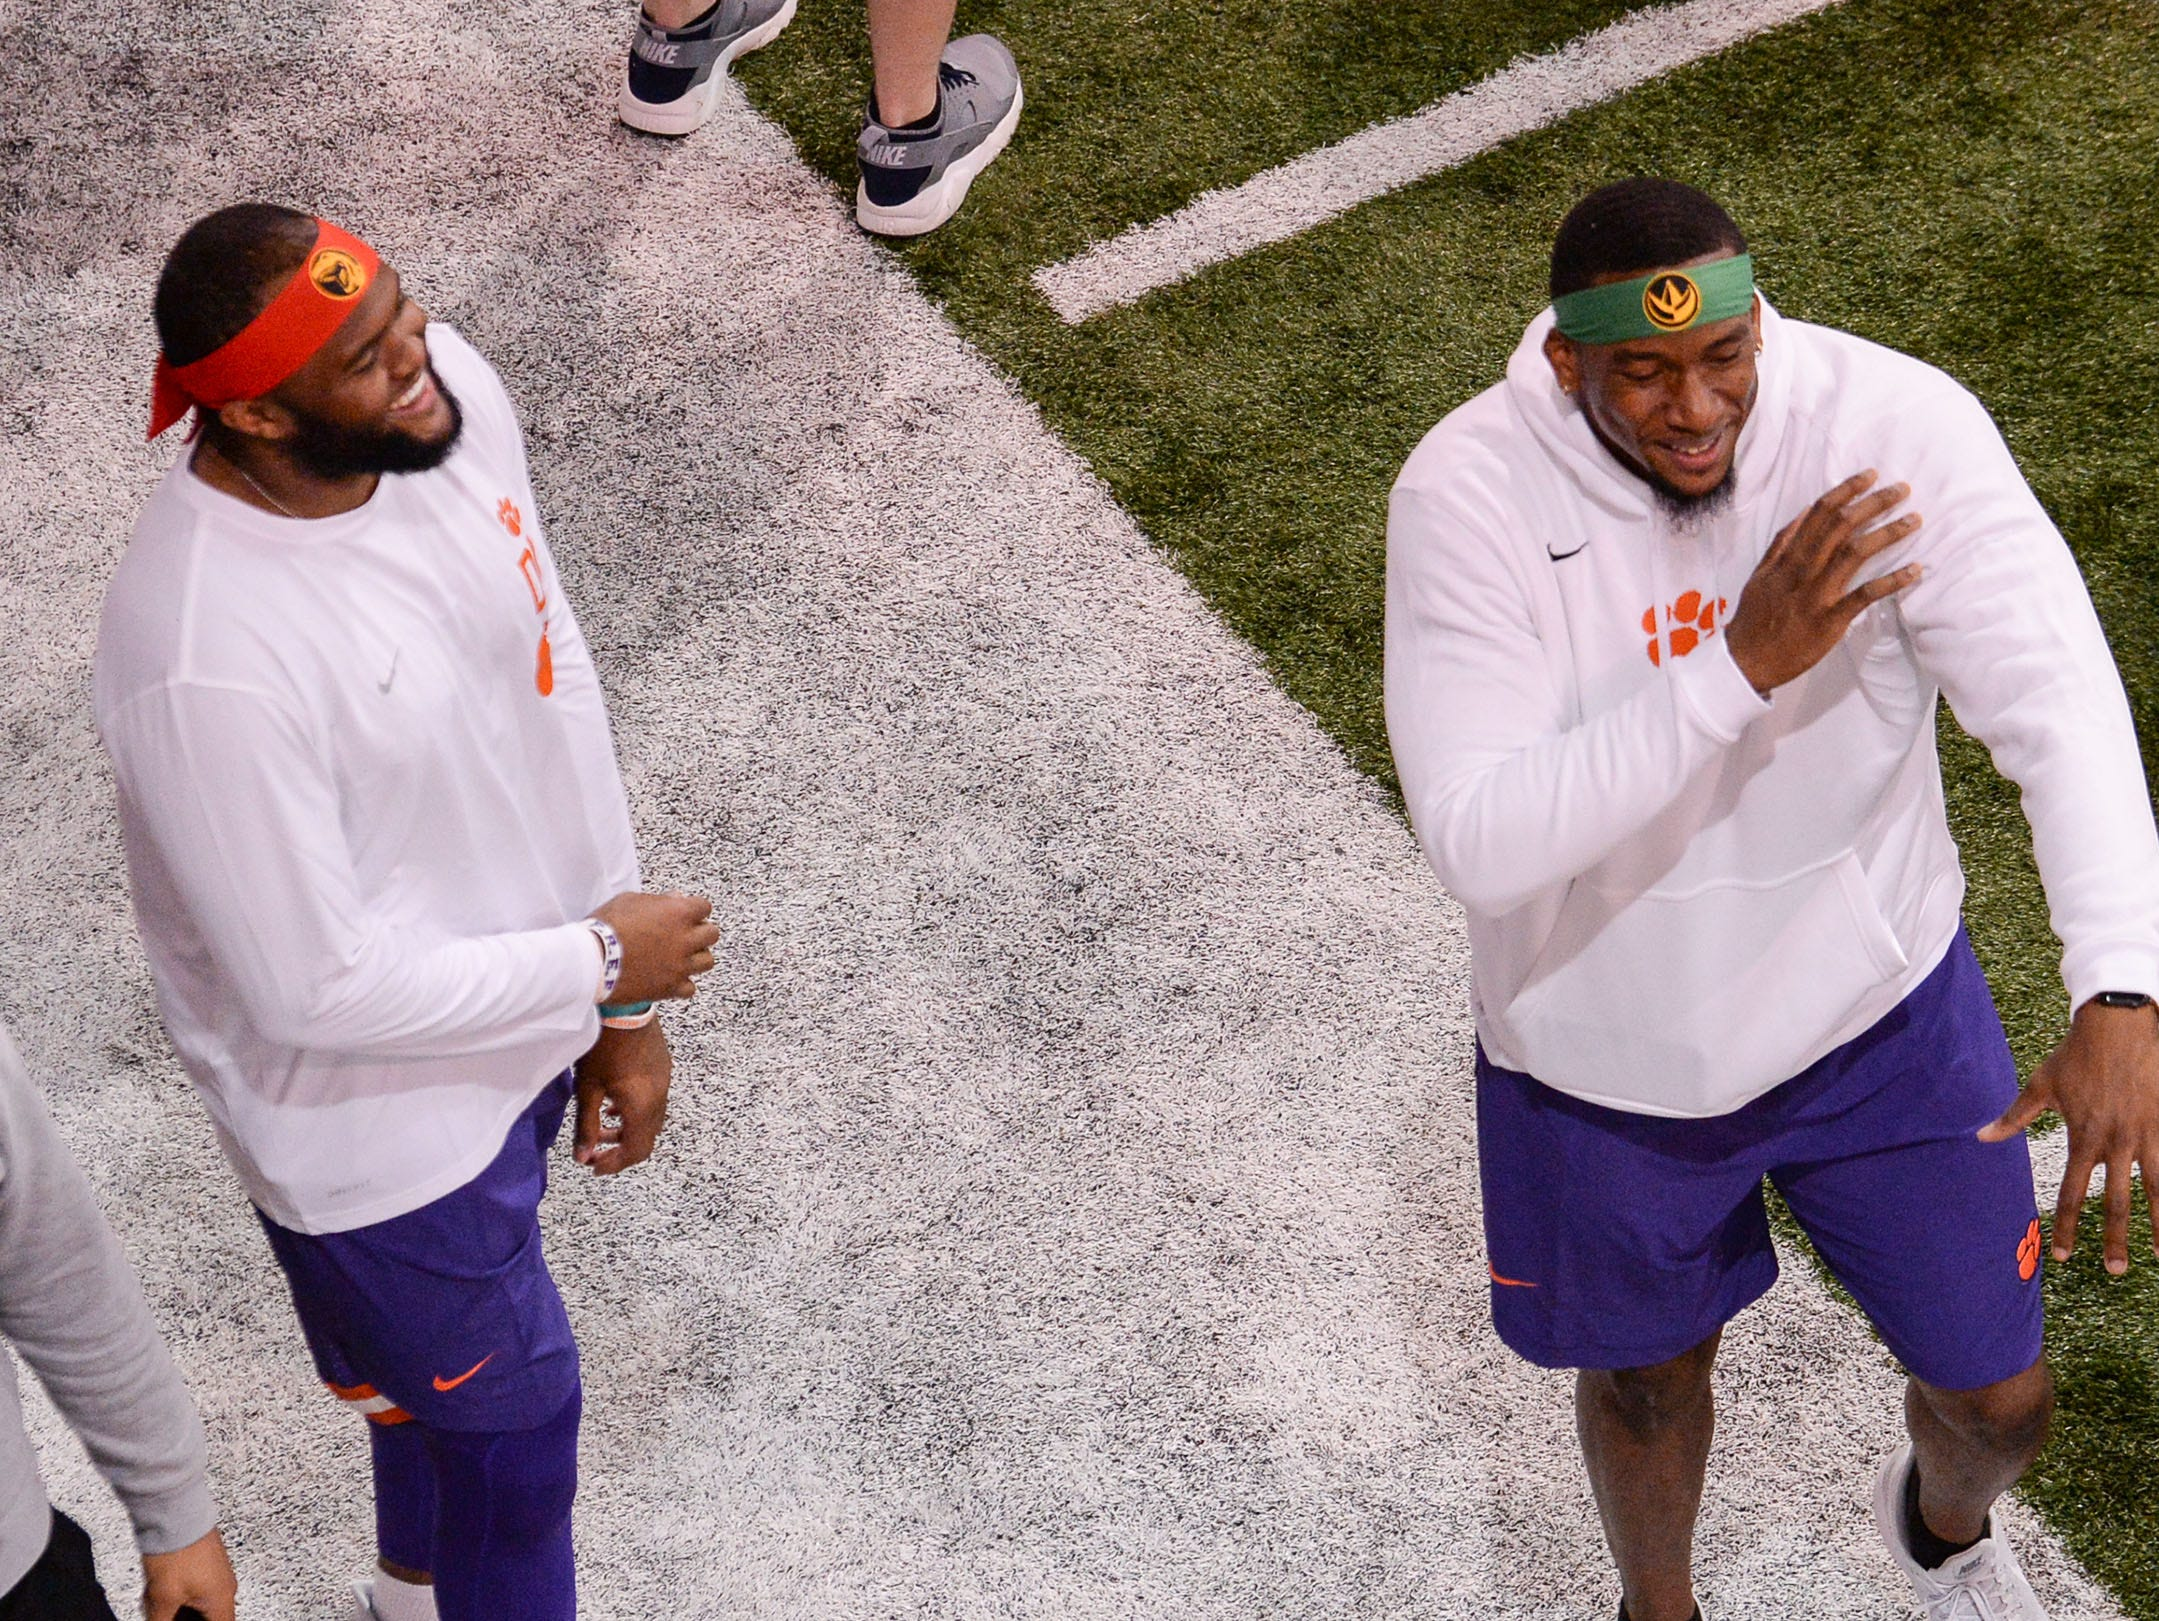 Defensive end Austin Bryant, left, and Clelin Ferrell during Clemson Pro Day at the Poe Indoor Facility in Clemson, S.C. Thursday, March 14, 2019.